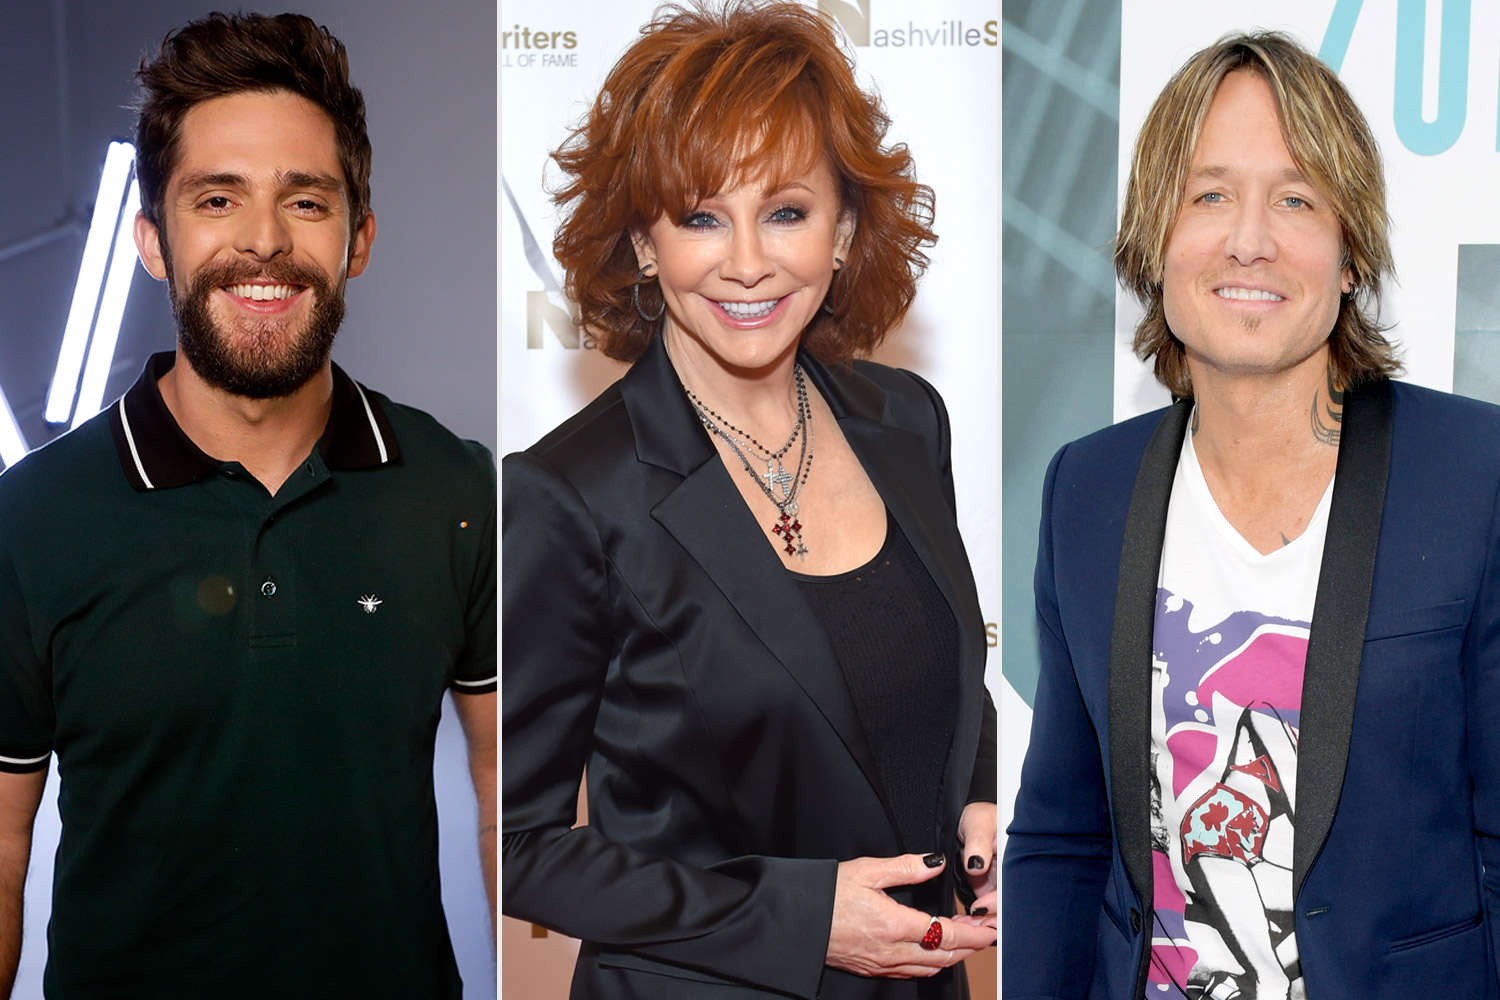 Thomas Rhett, Reba McEntire, Keith Urban